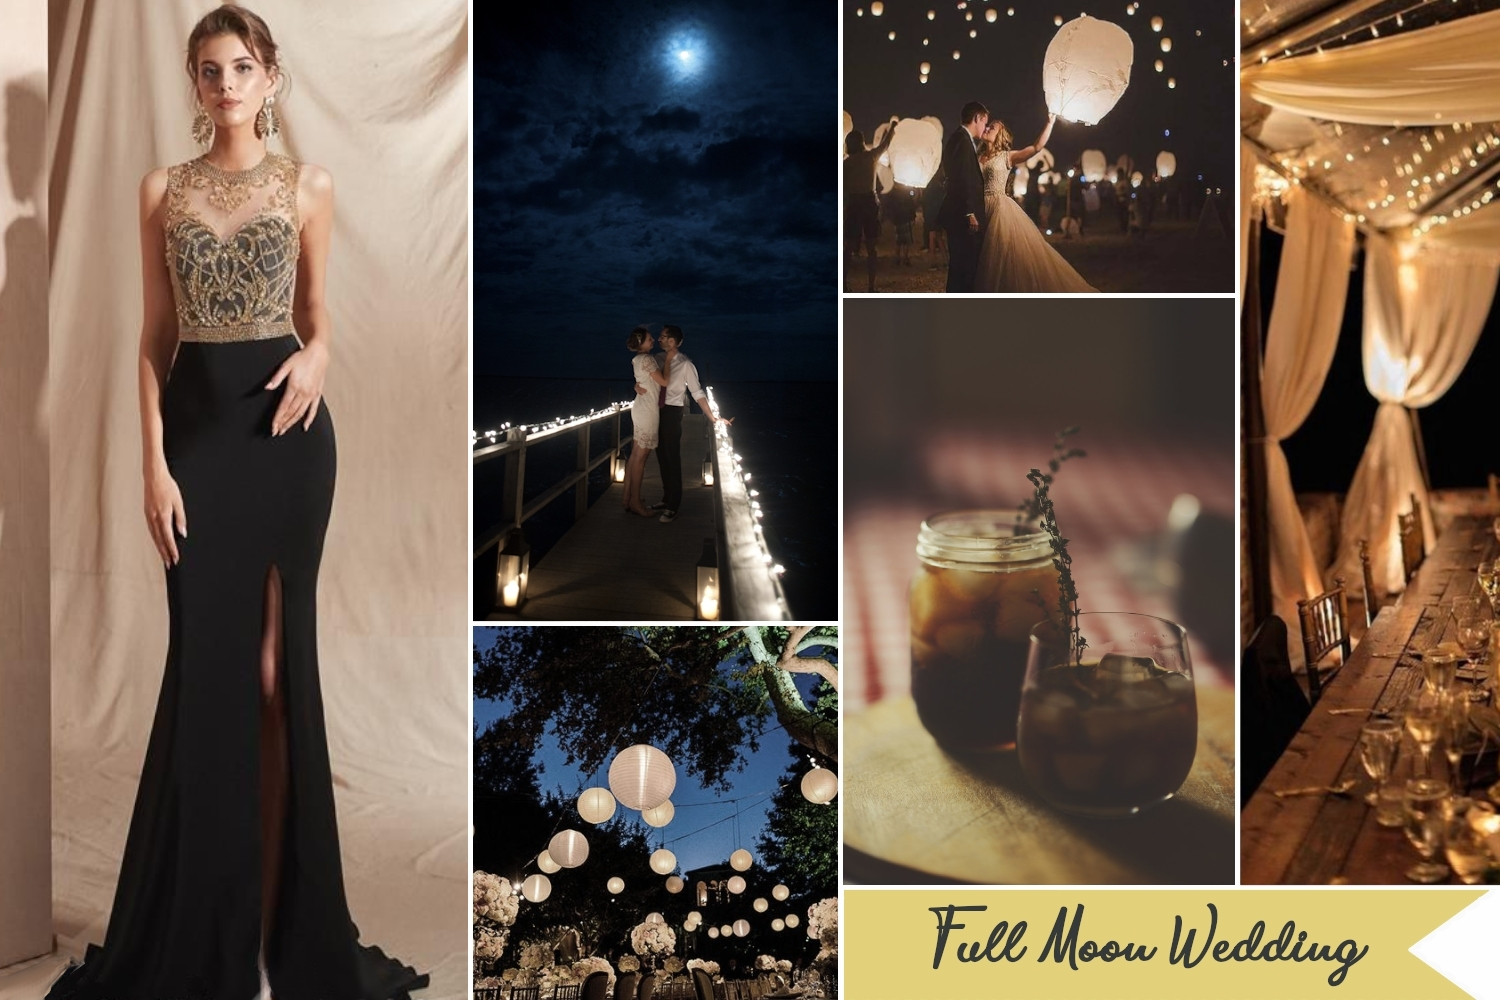 under the full moon wedding collage